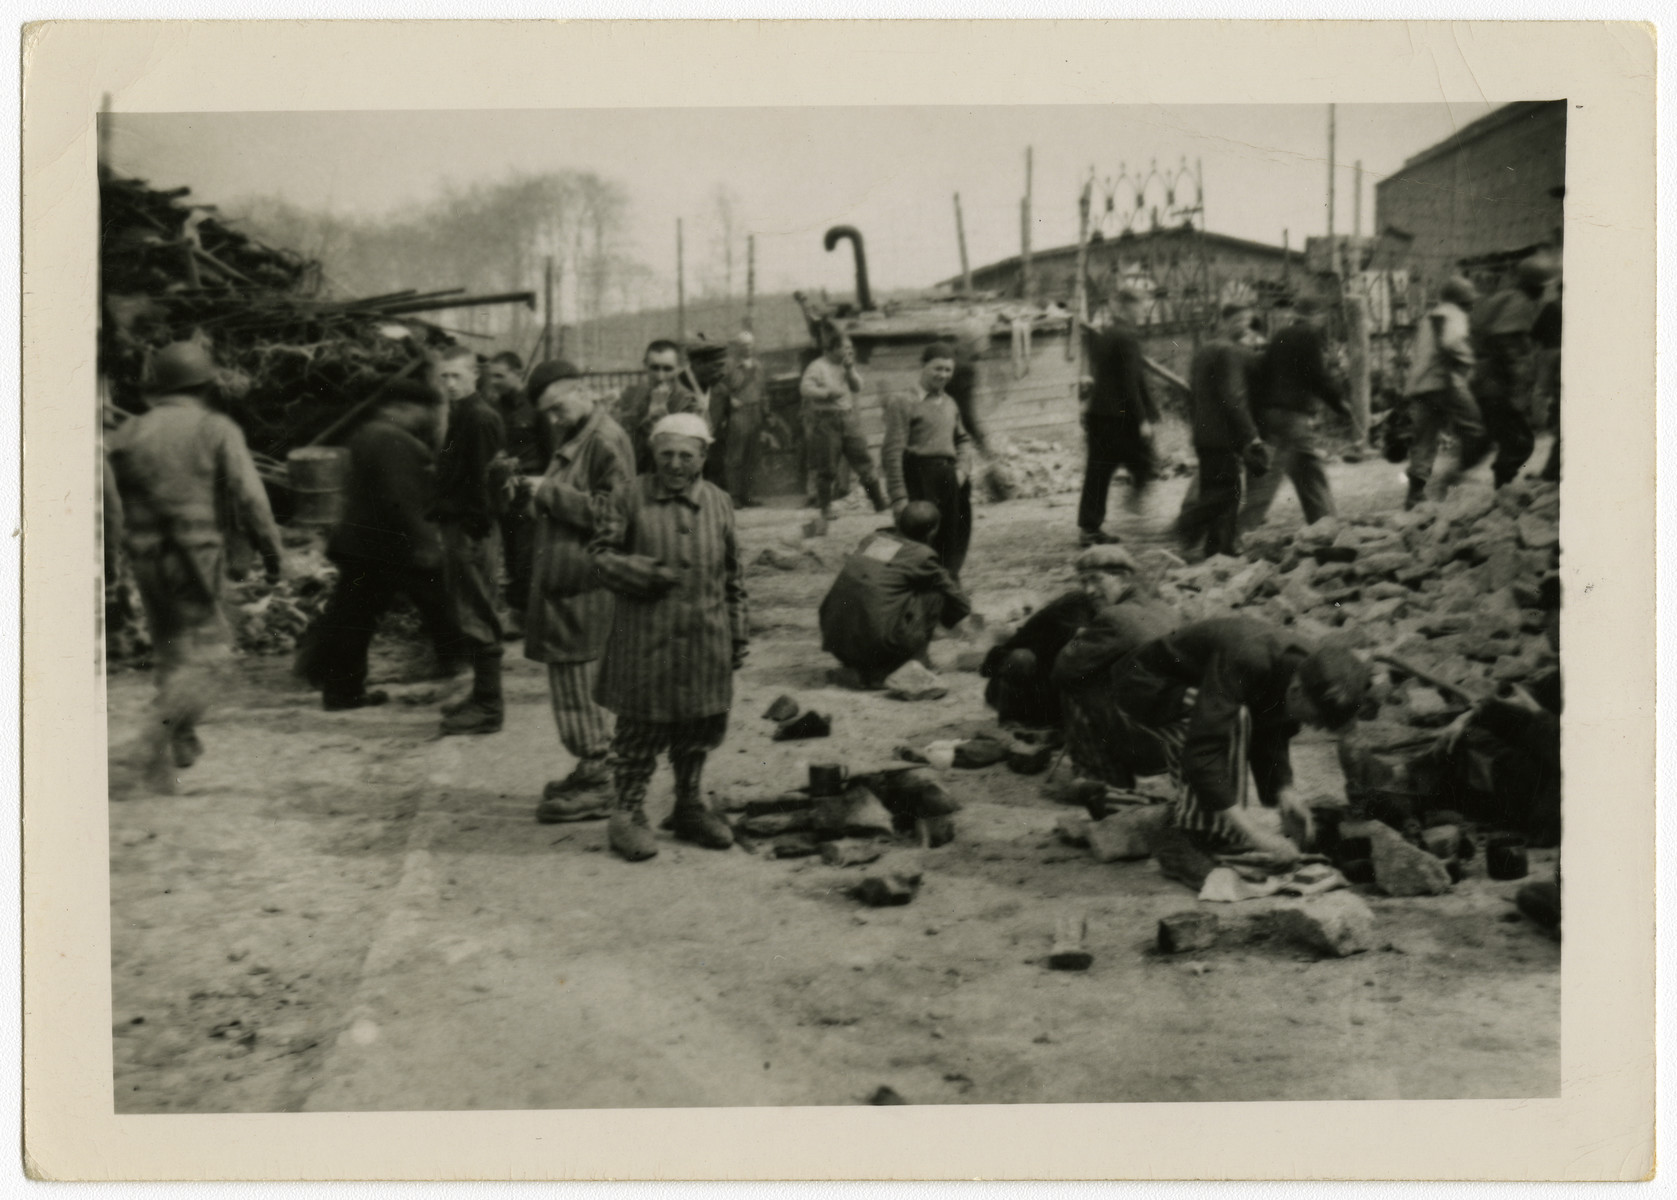 Survivors gather on the grounds of [what is probably the Buchenwald concentration camp.]